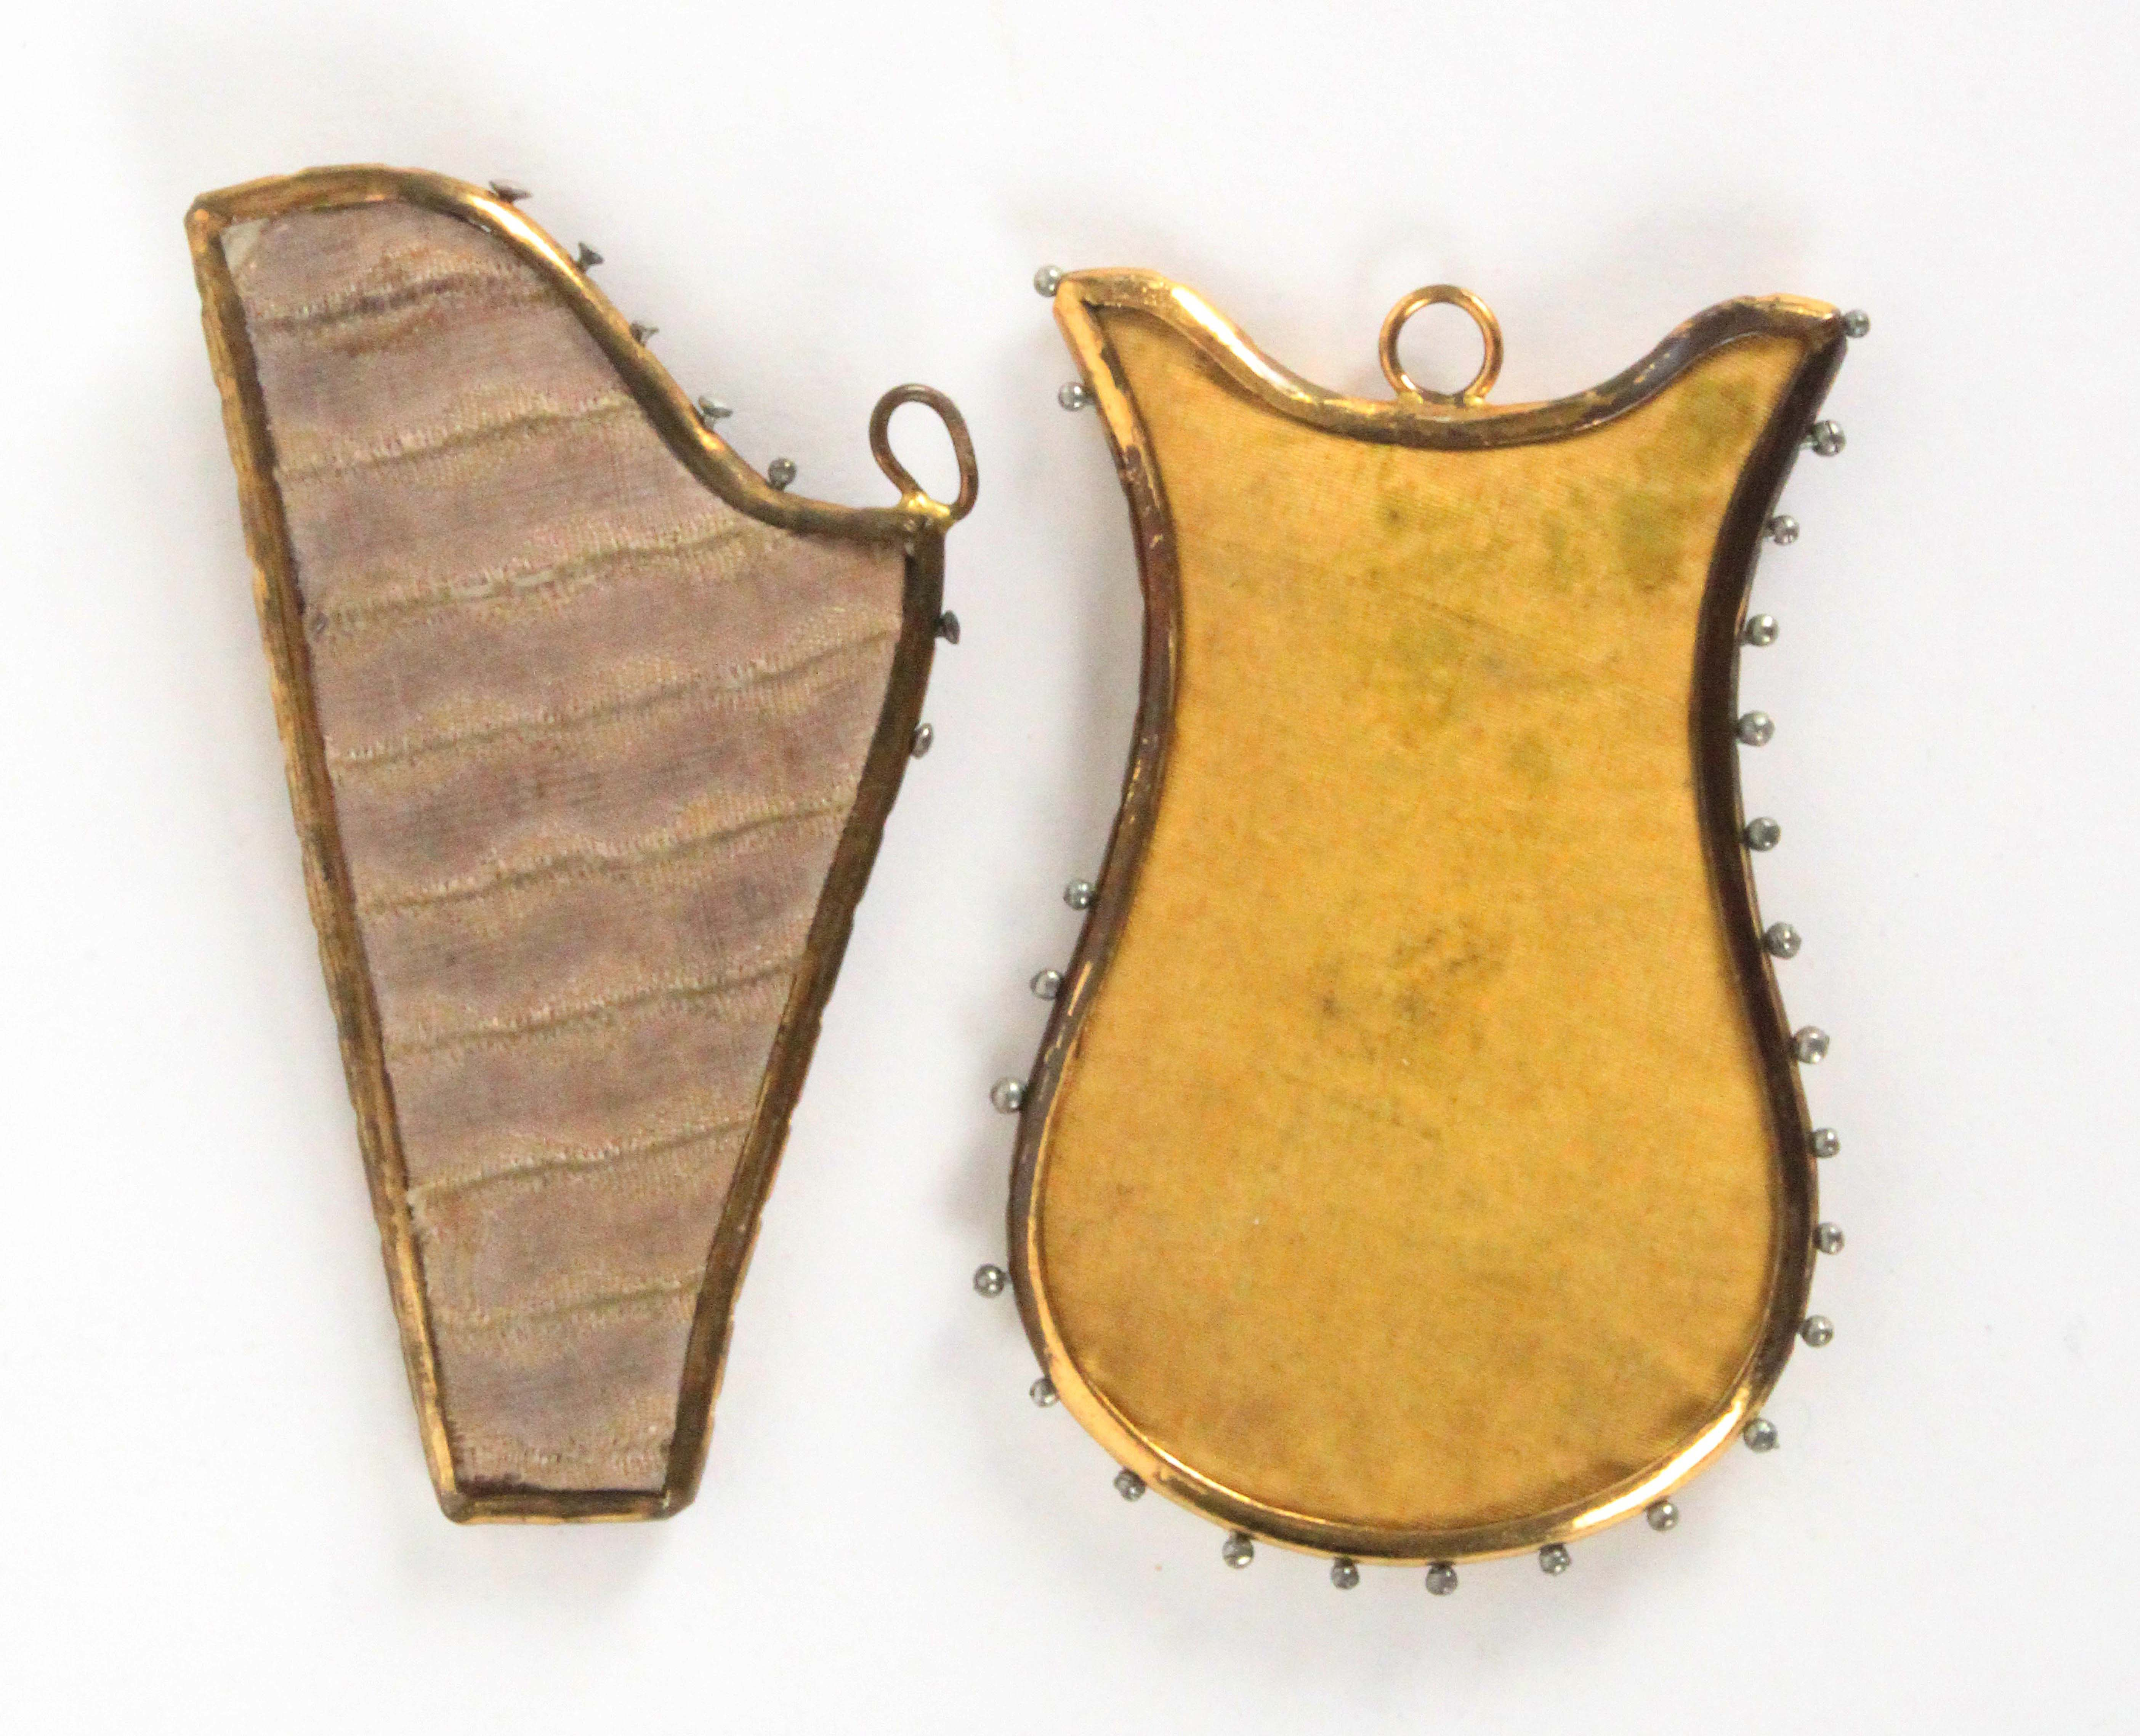 Two scarce metal frame early 19th Century pin retainers modelled as a harp and a lyre, each with - Image 2 of 2